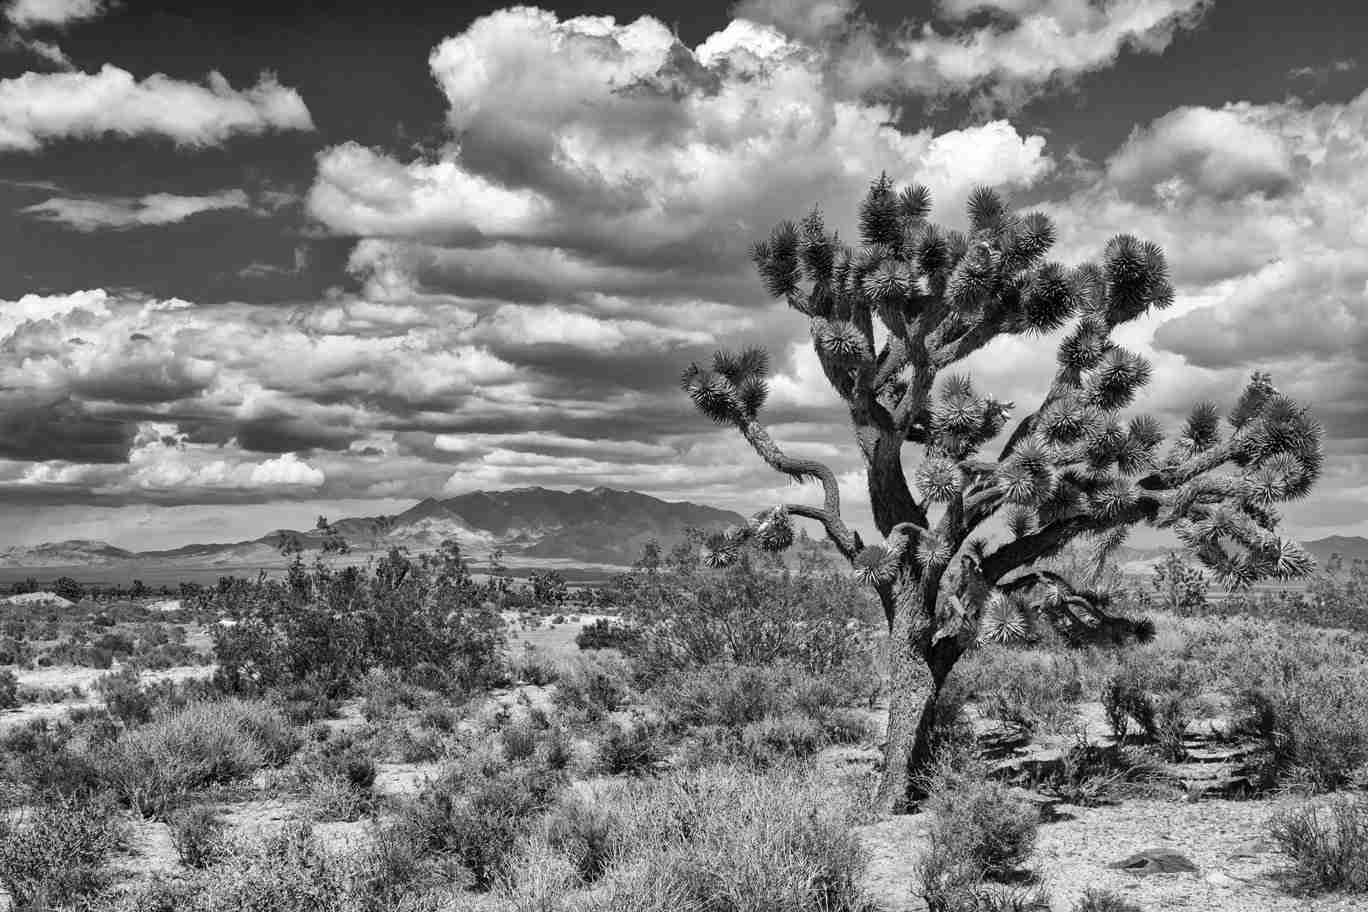 Black & White Print of the California Desert